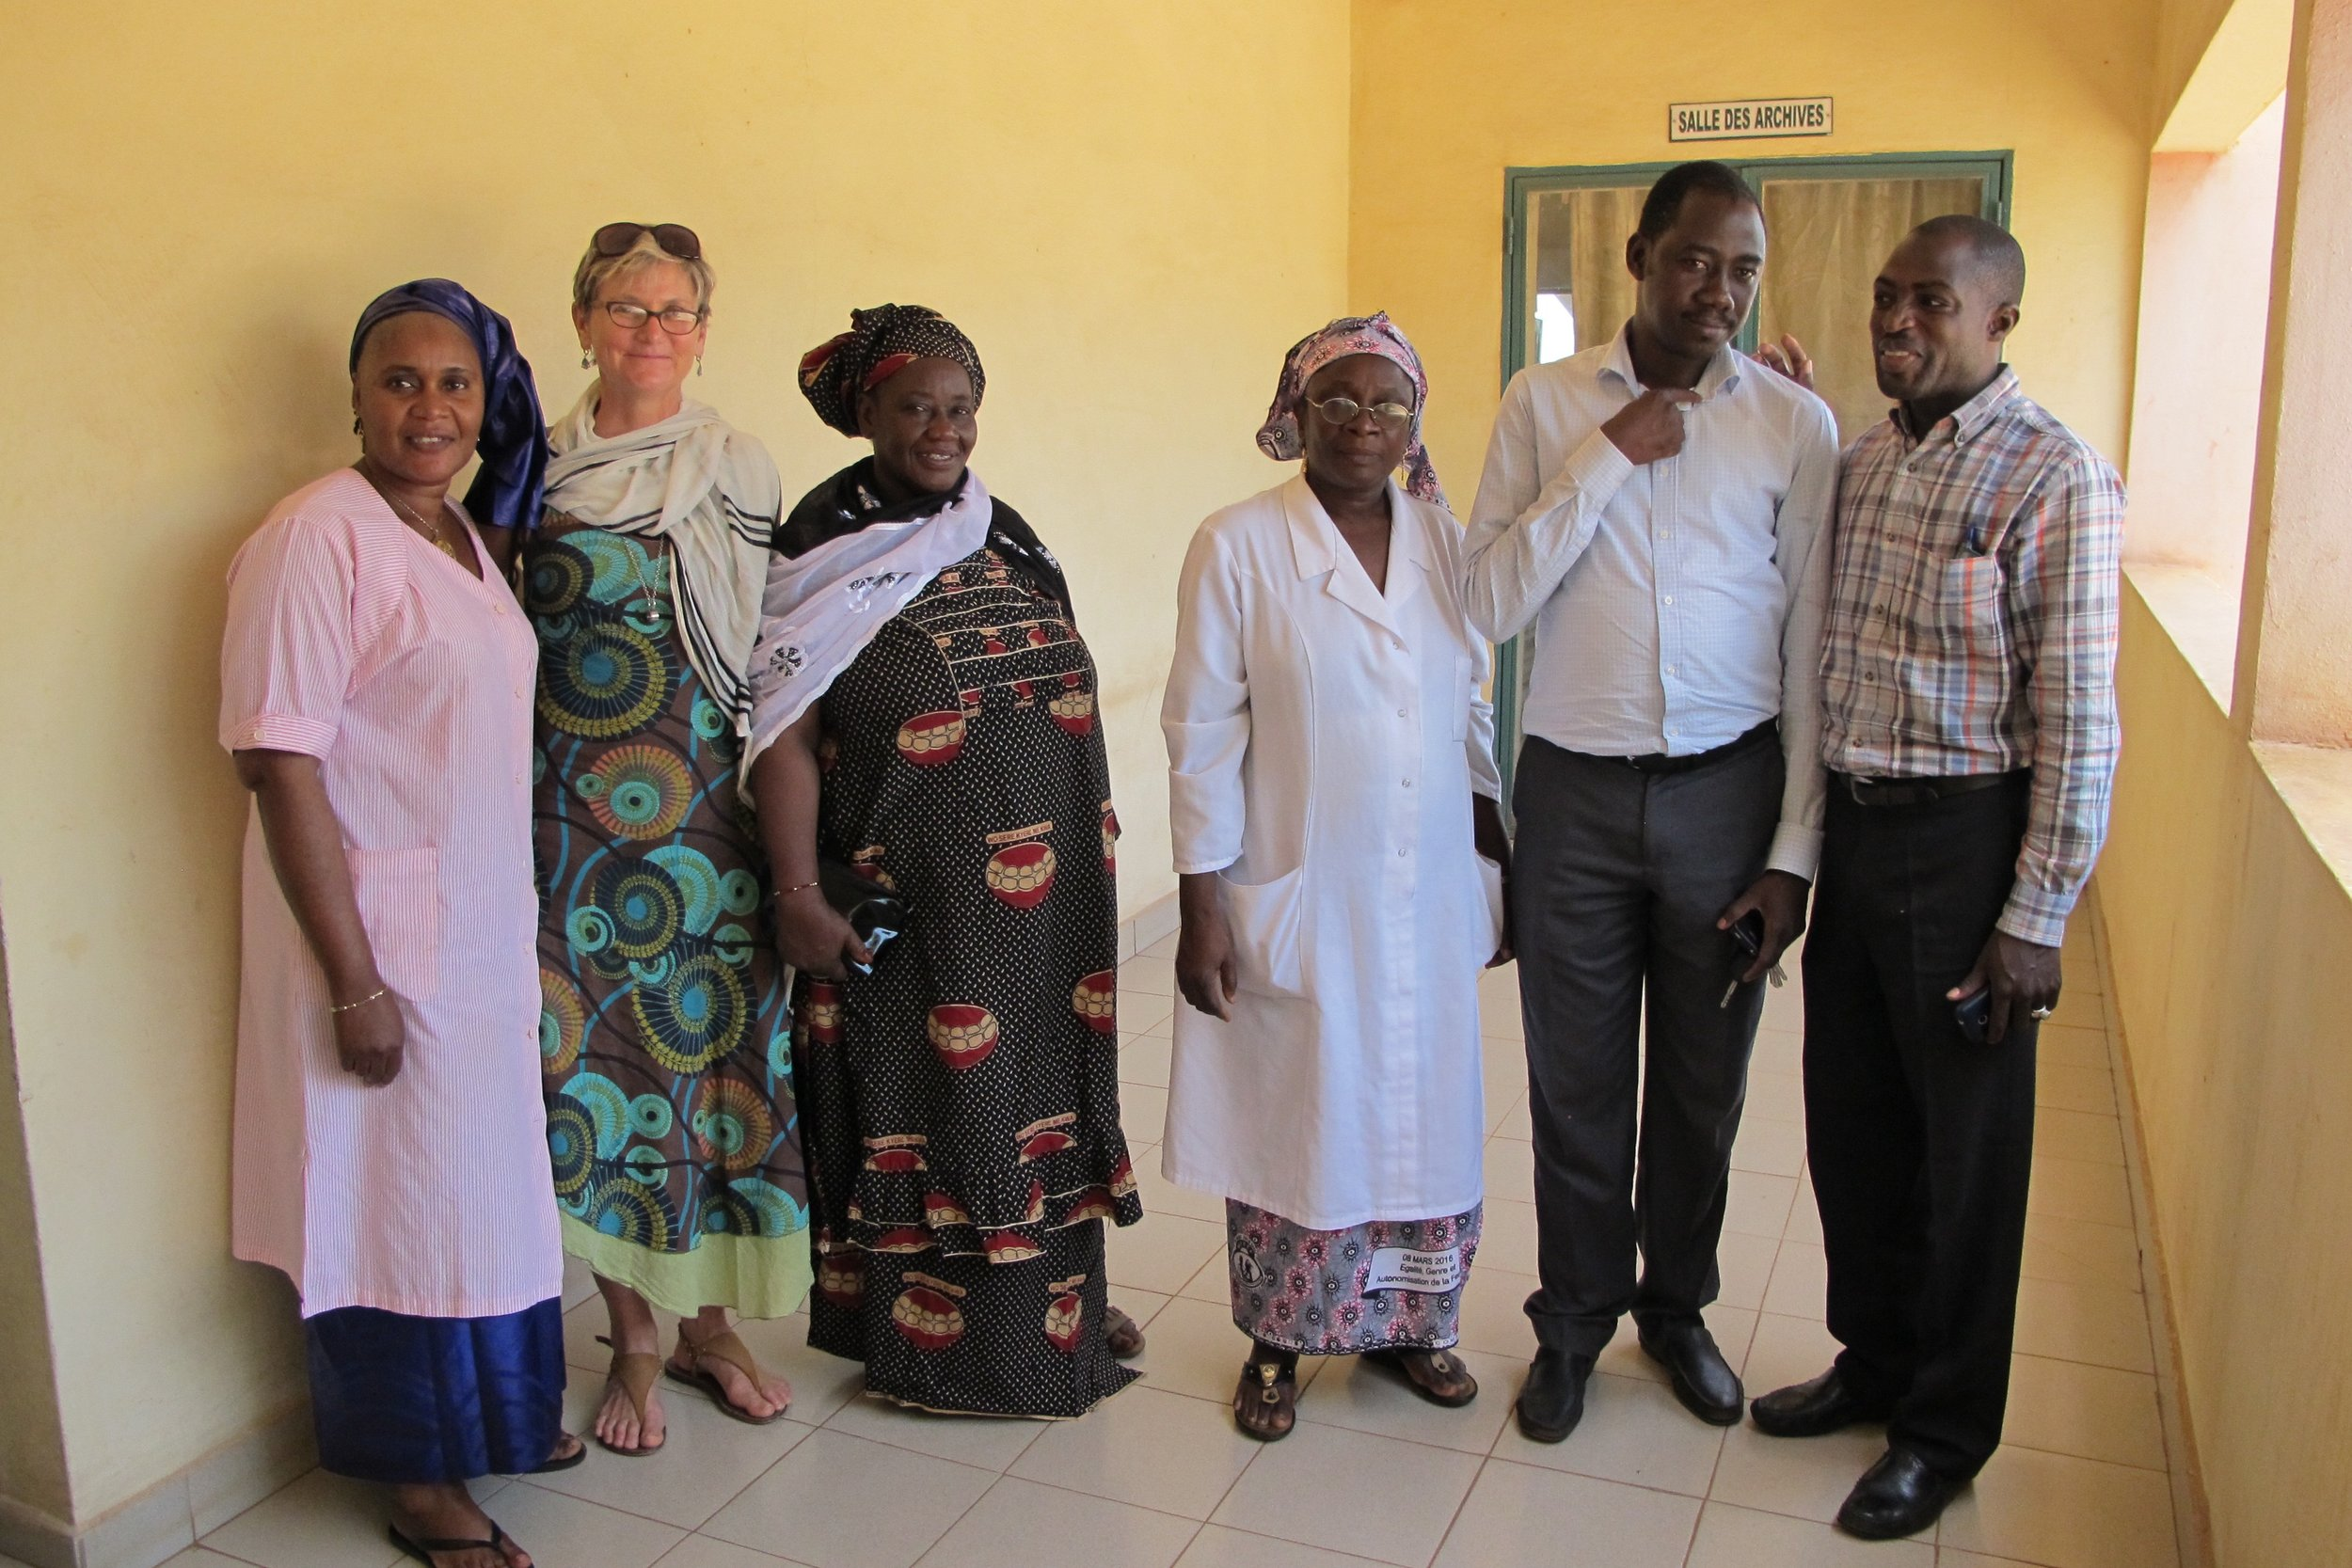 The picture above is from the Banconi clinic during our recent trip to Bamako: GAIA's founder, Dr. Annie is flanked by a midwife and a community health worker who were both part of GAIA's cervical cancer screening program. The Banconi physician director, Dr. Mariko is in the middle, with GAIA Director Dr. Karamoko and Kotou to the right.